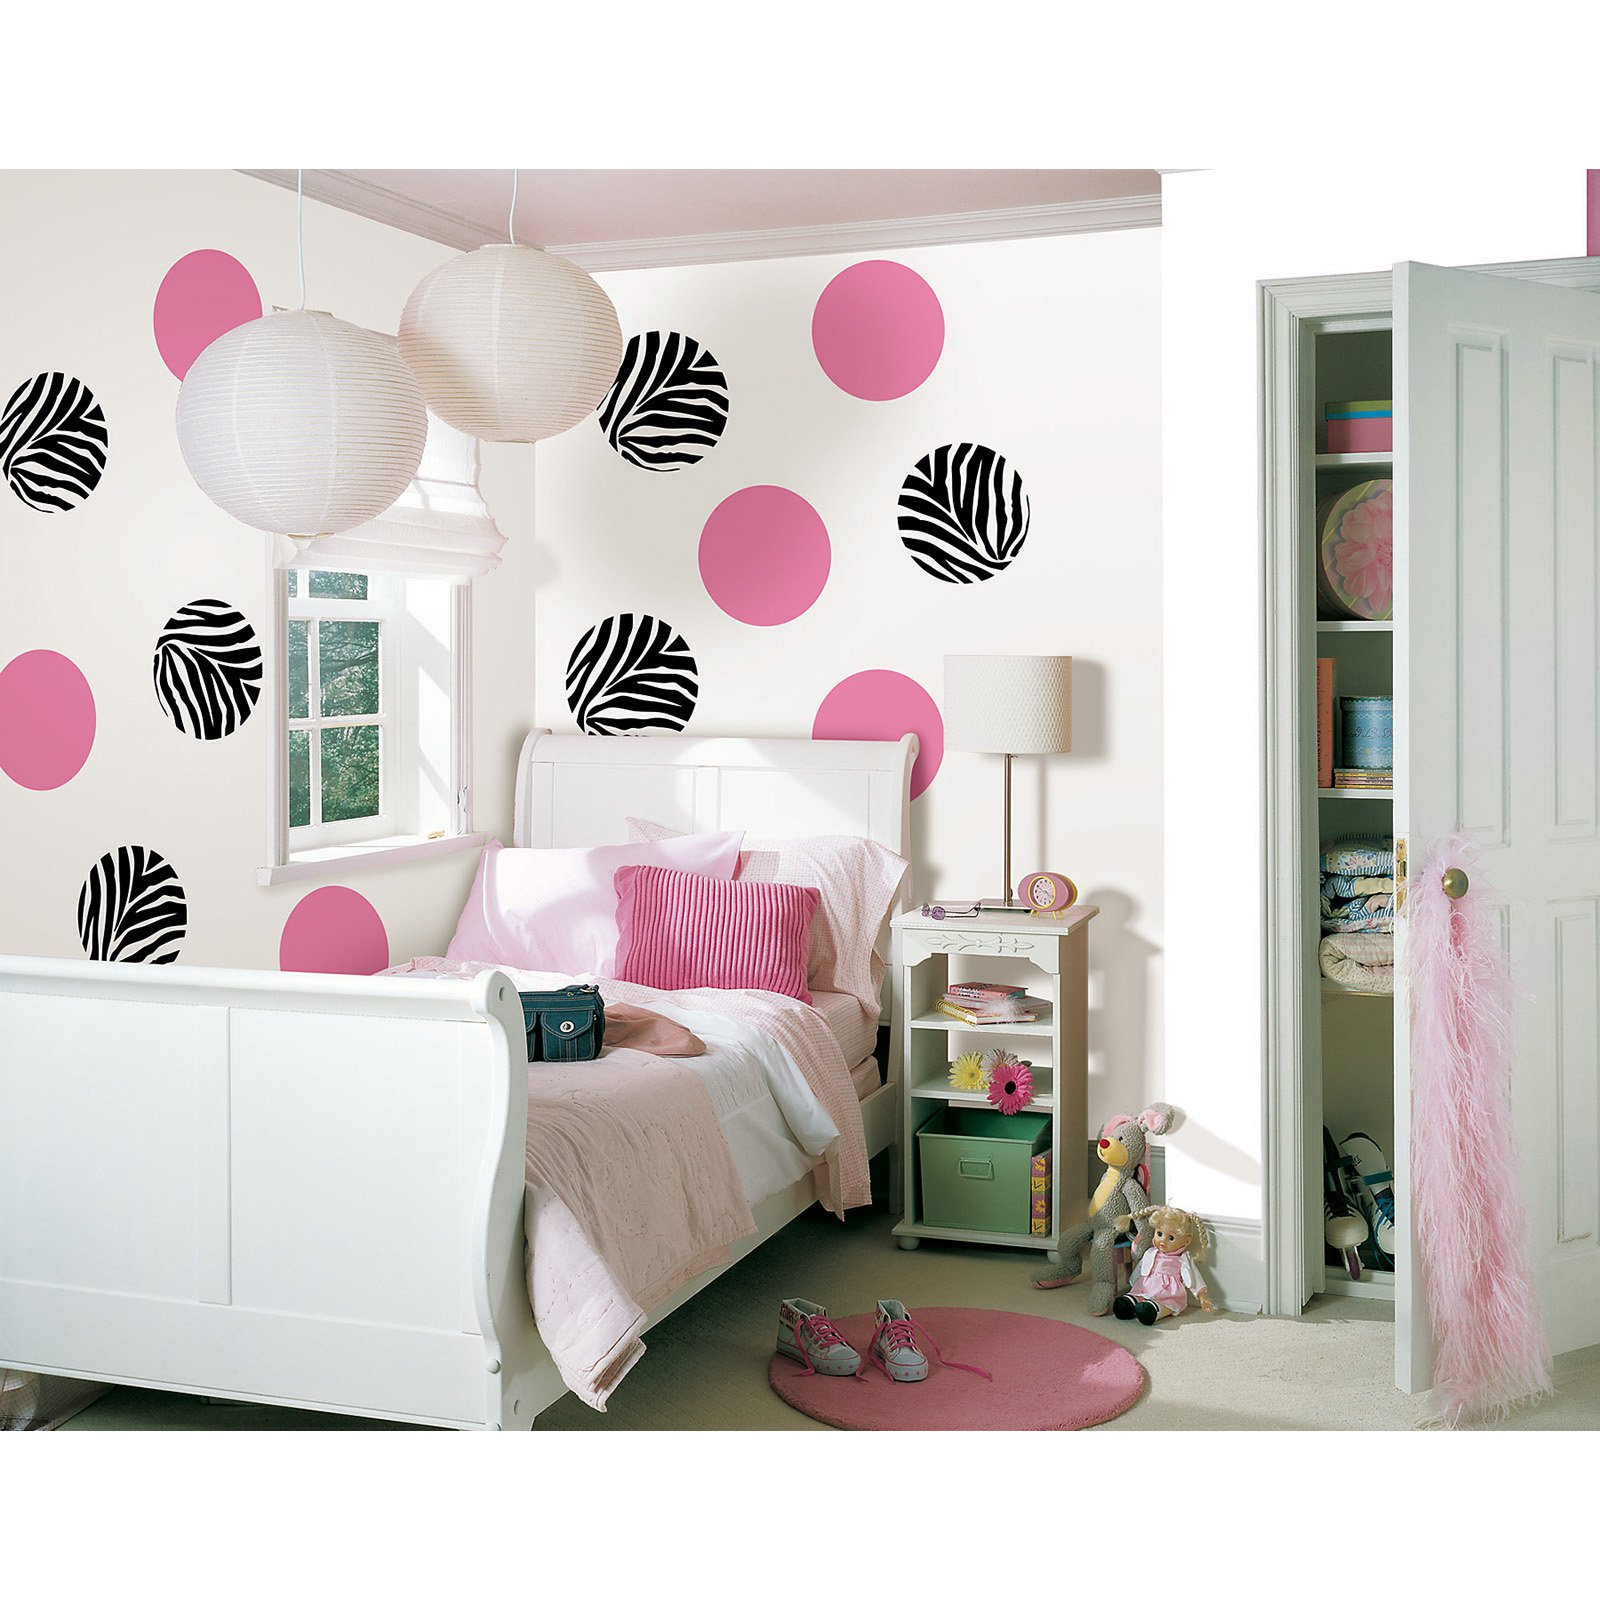 WallPops Go Wild and Flirt Pink Dots Decal - Set of 18